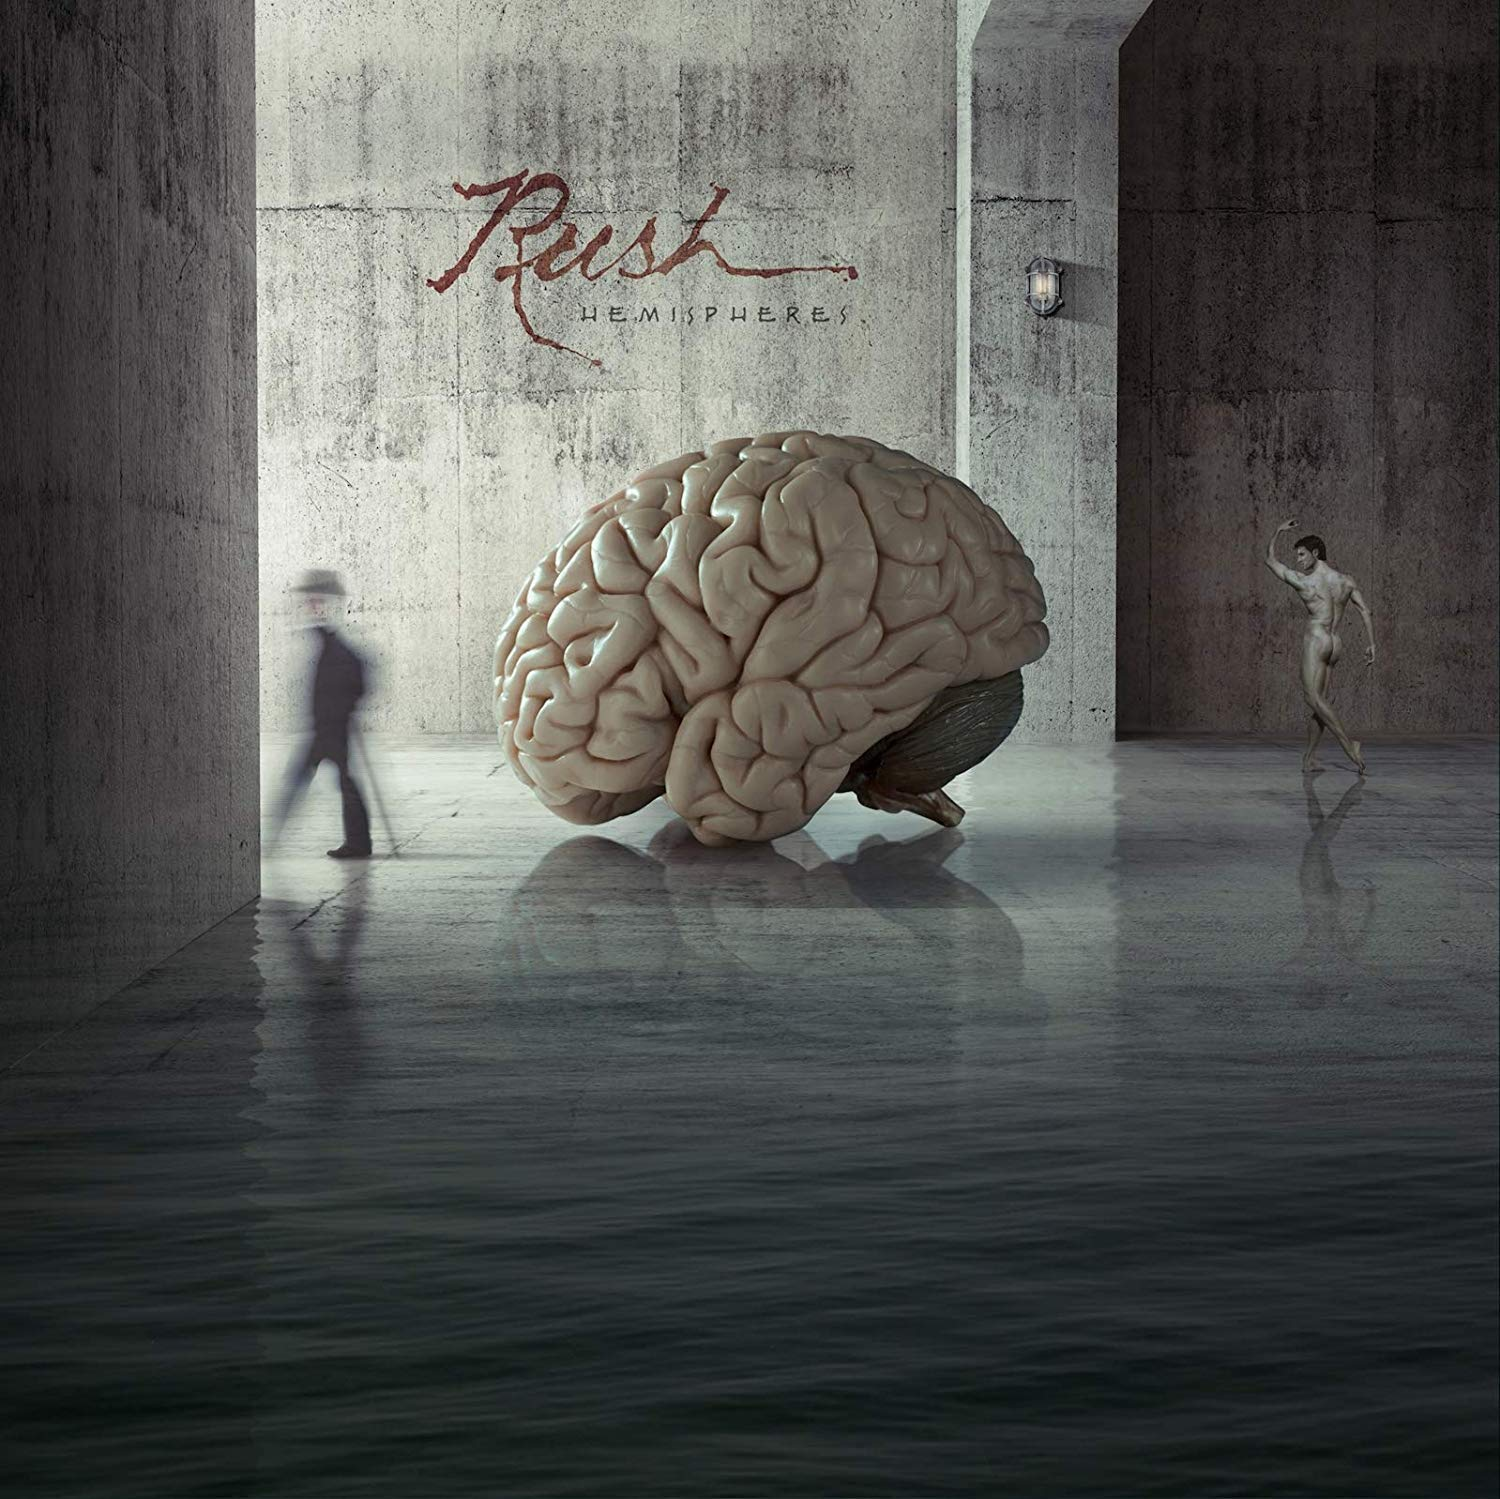 CD : Rush - Hemispheres (40th Anniversary) (Anniversary Edition, Digipack Packaging)